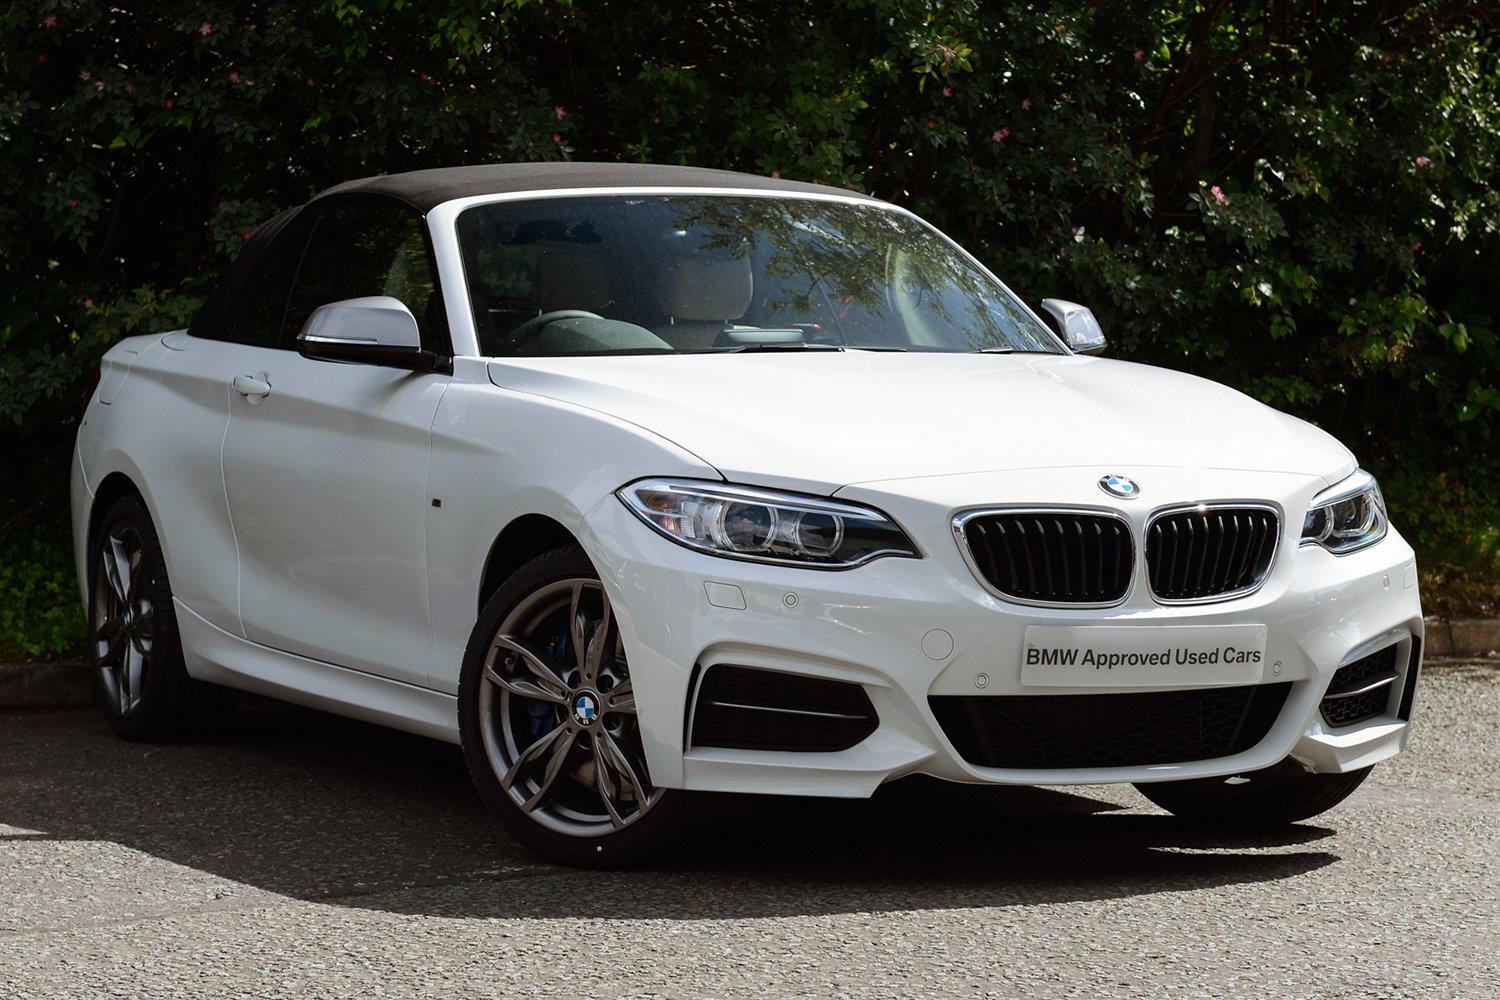 BMW 2 Series Convertible MW17YOV - Image 6